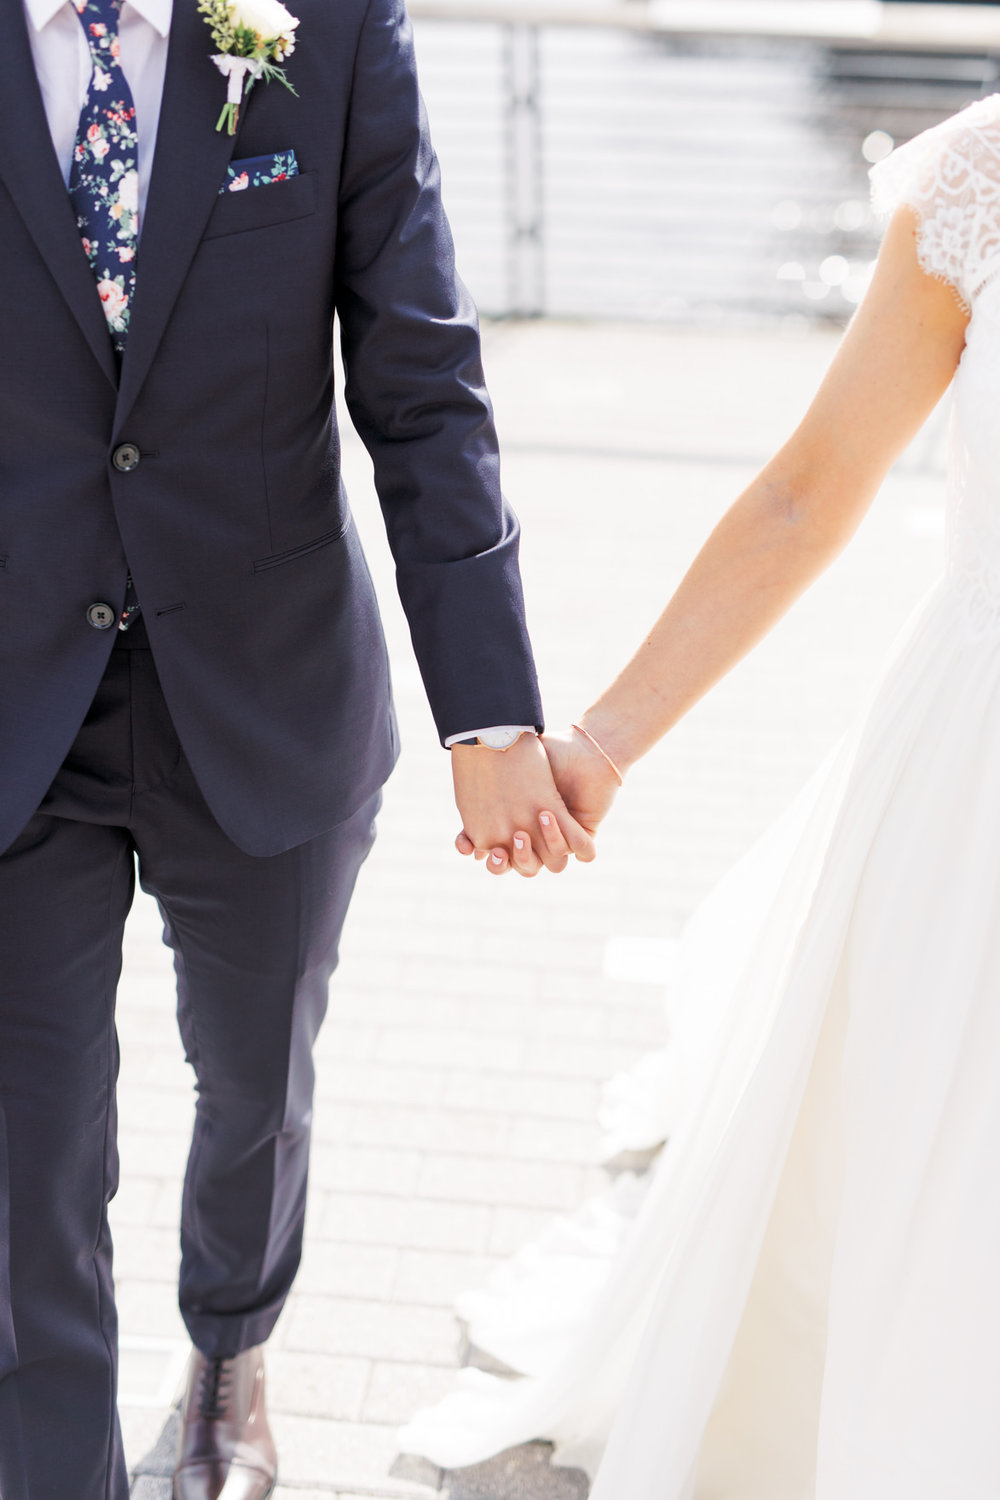 Walking hand in hand in the sunshine as they are about to head into their modern and elegant old city Philadelphia wedding at Power Plant Productions. Power Plant Production wedding photographer